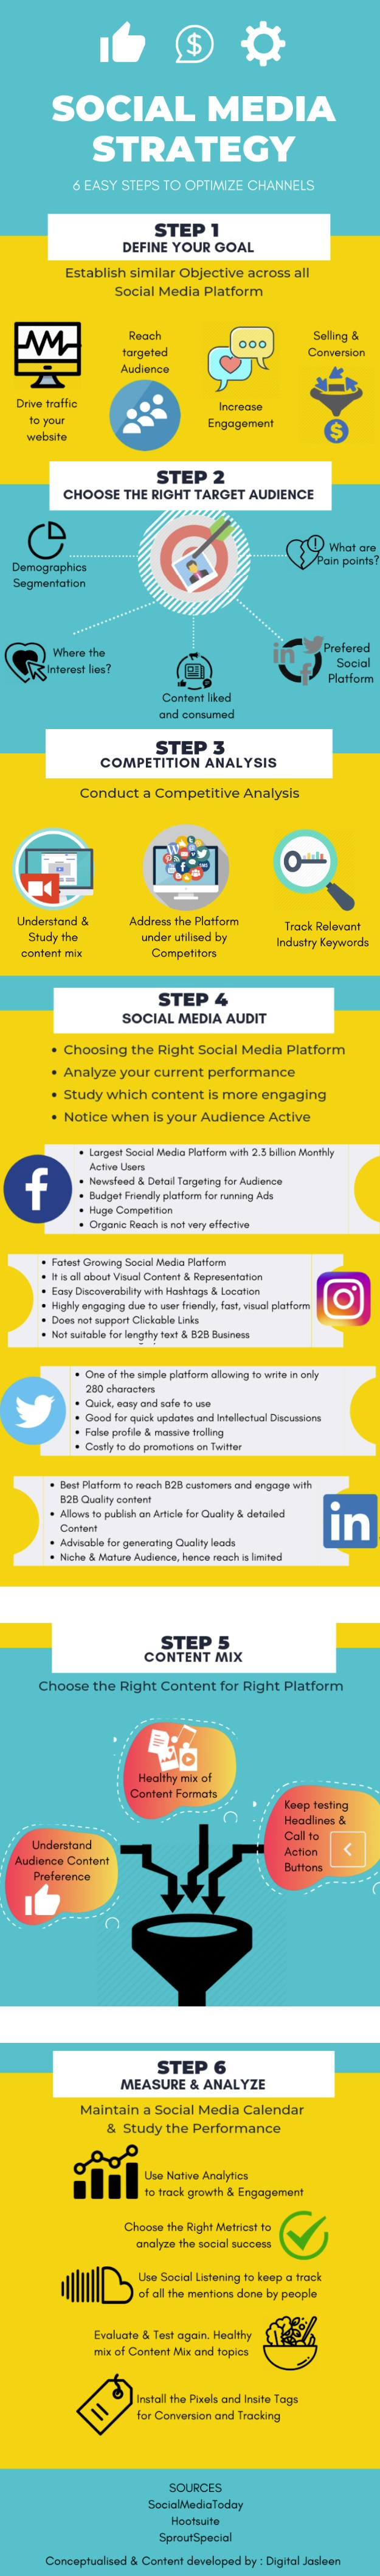 Infographic lists key elements of an effective digital marketing plan